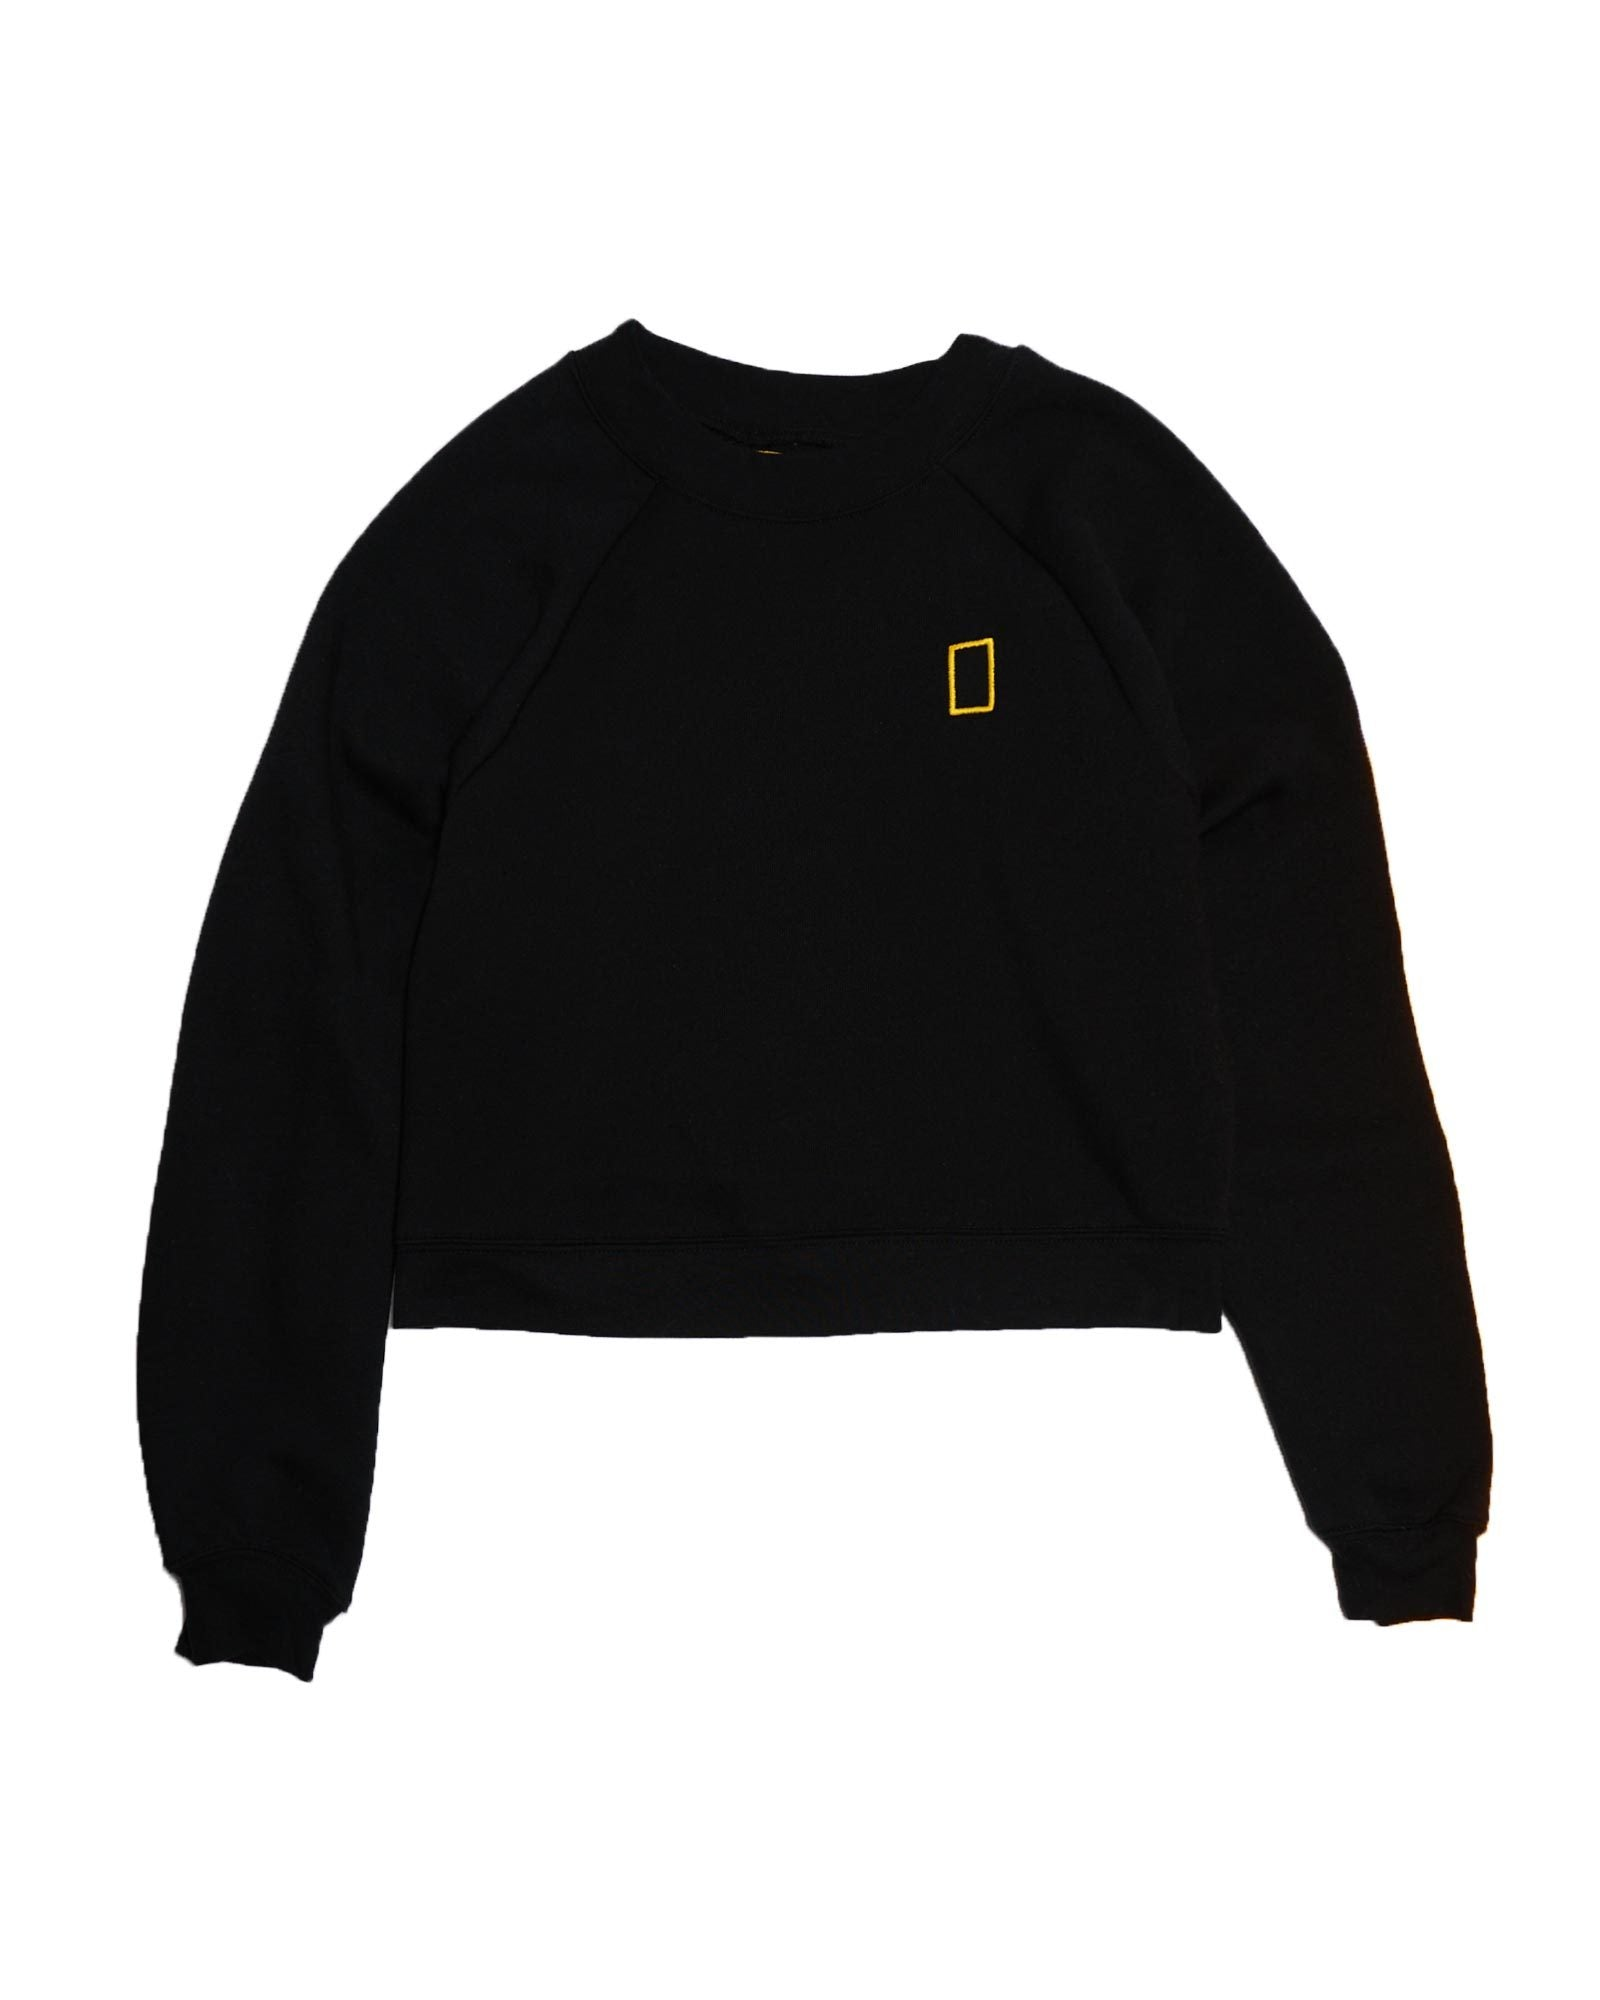 National Geographic x Parks Project Womens Cropped Logo Crew Sweatshirt | Parks Project | National Park Fleece